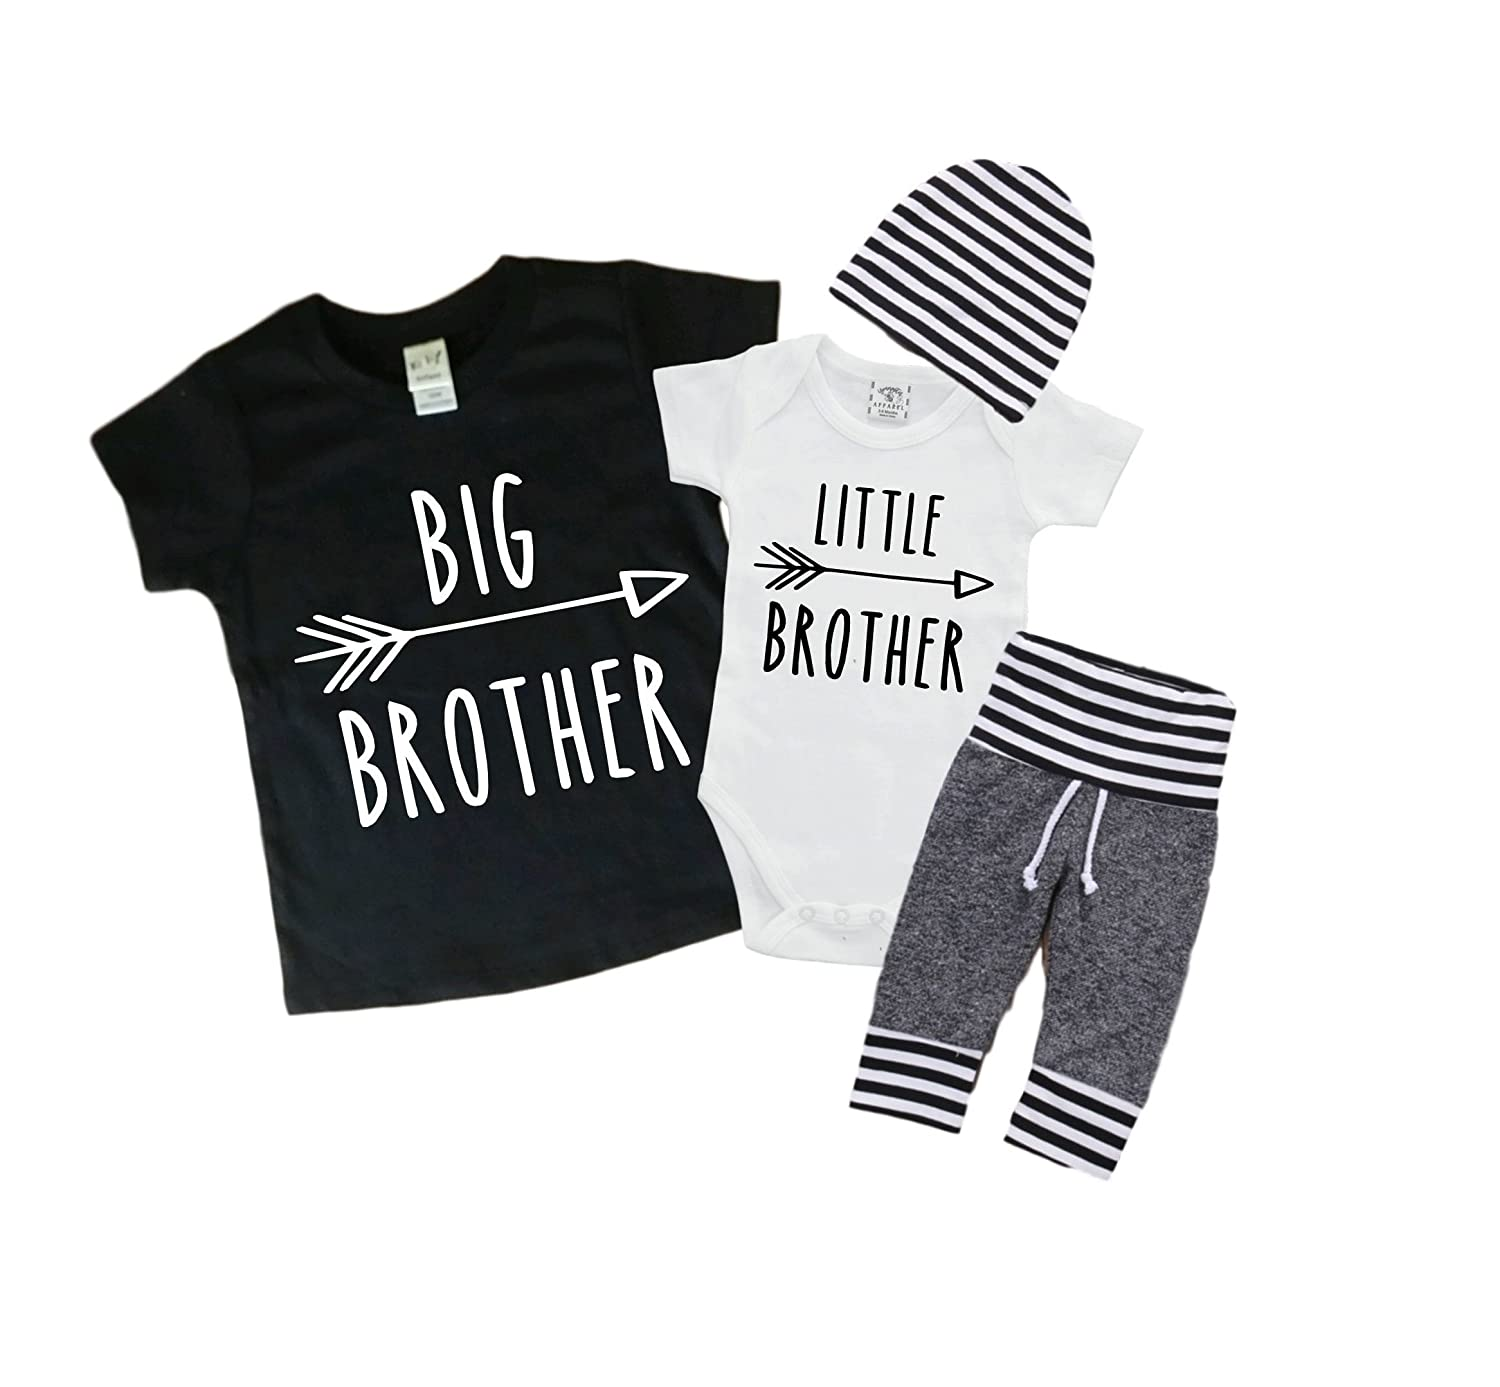 2c2922520 Amazon Carters Big Brother Shirt - DREAMWORKS